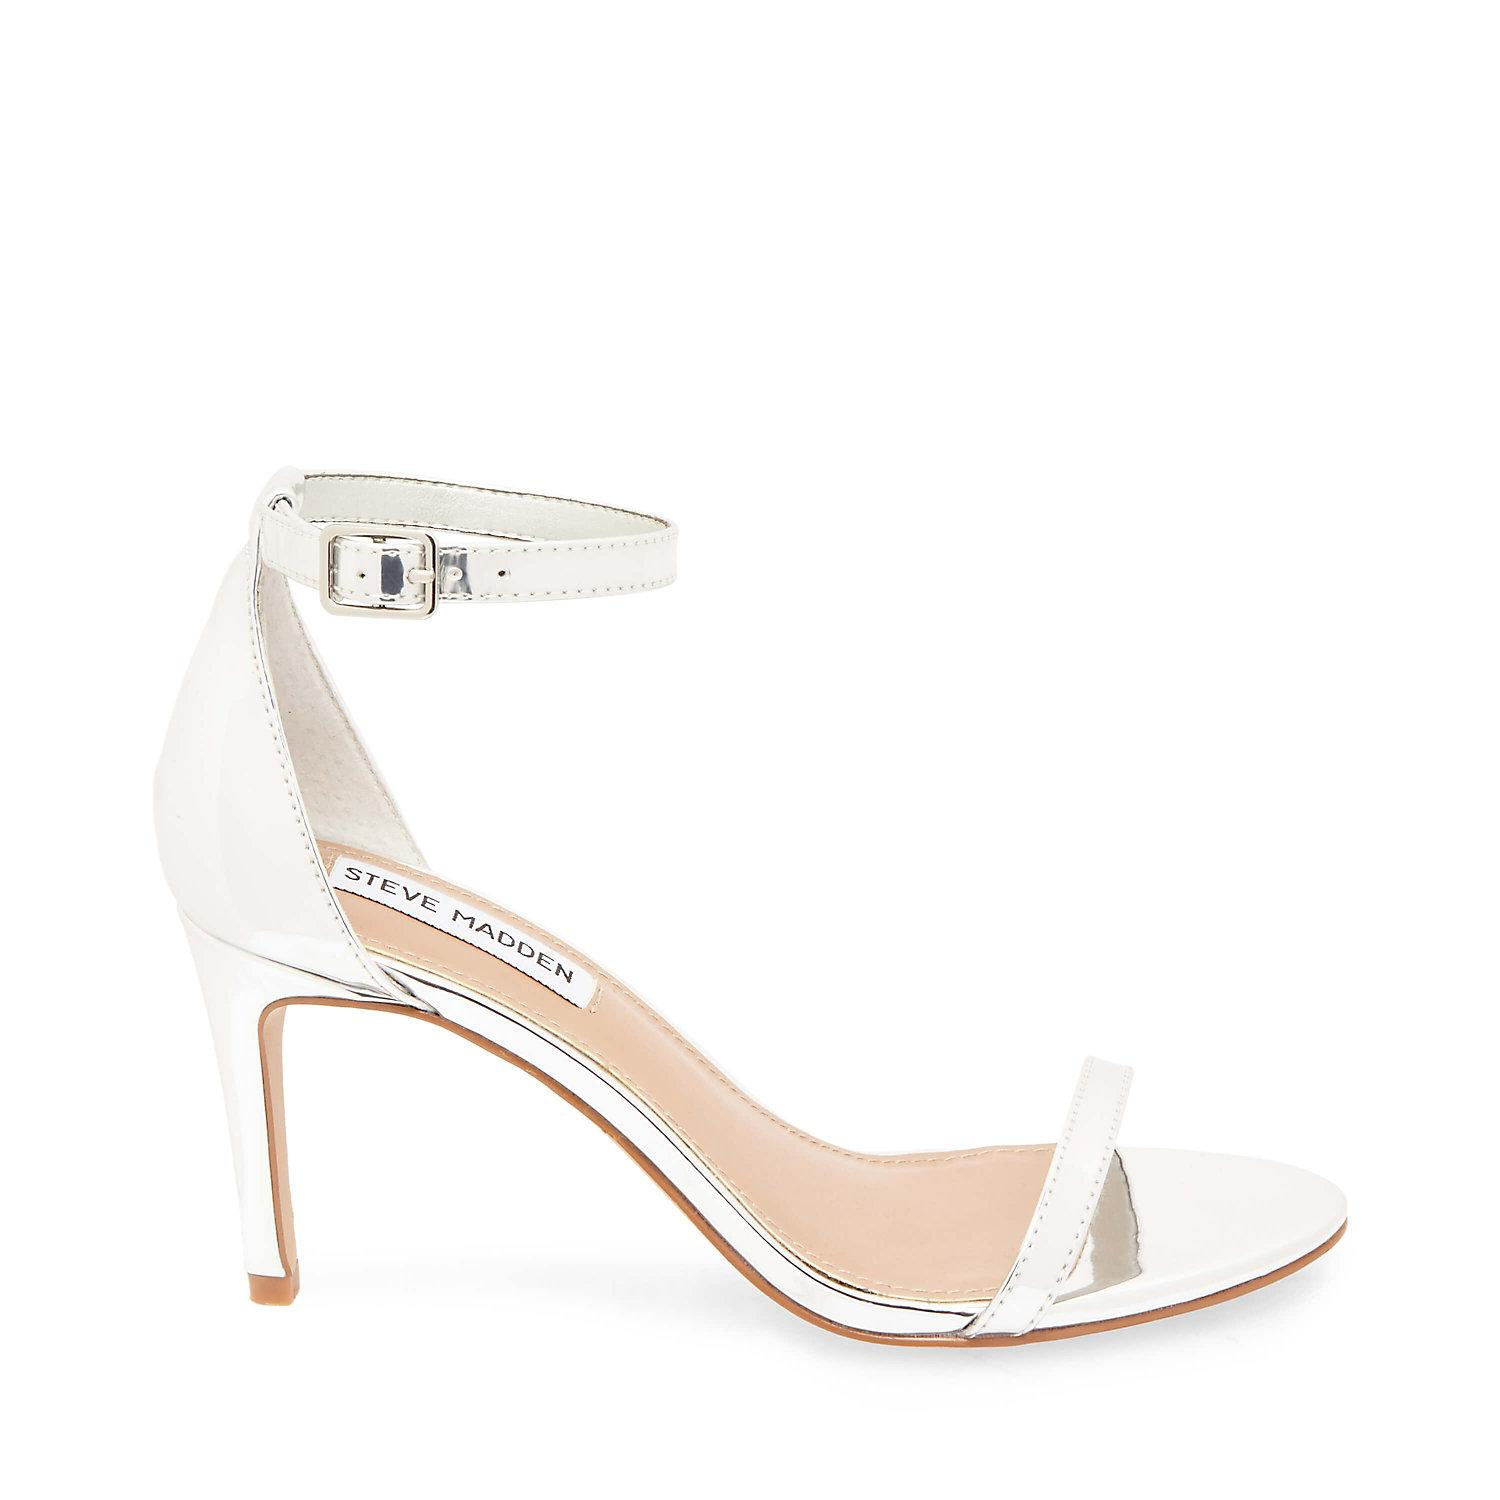 8a63ea706a0 Lyst - Steve Madden Salem in Metallic